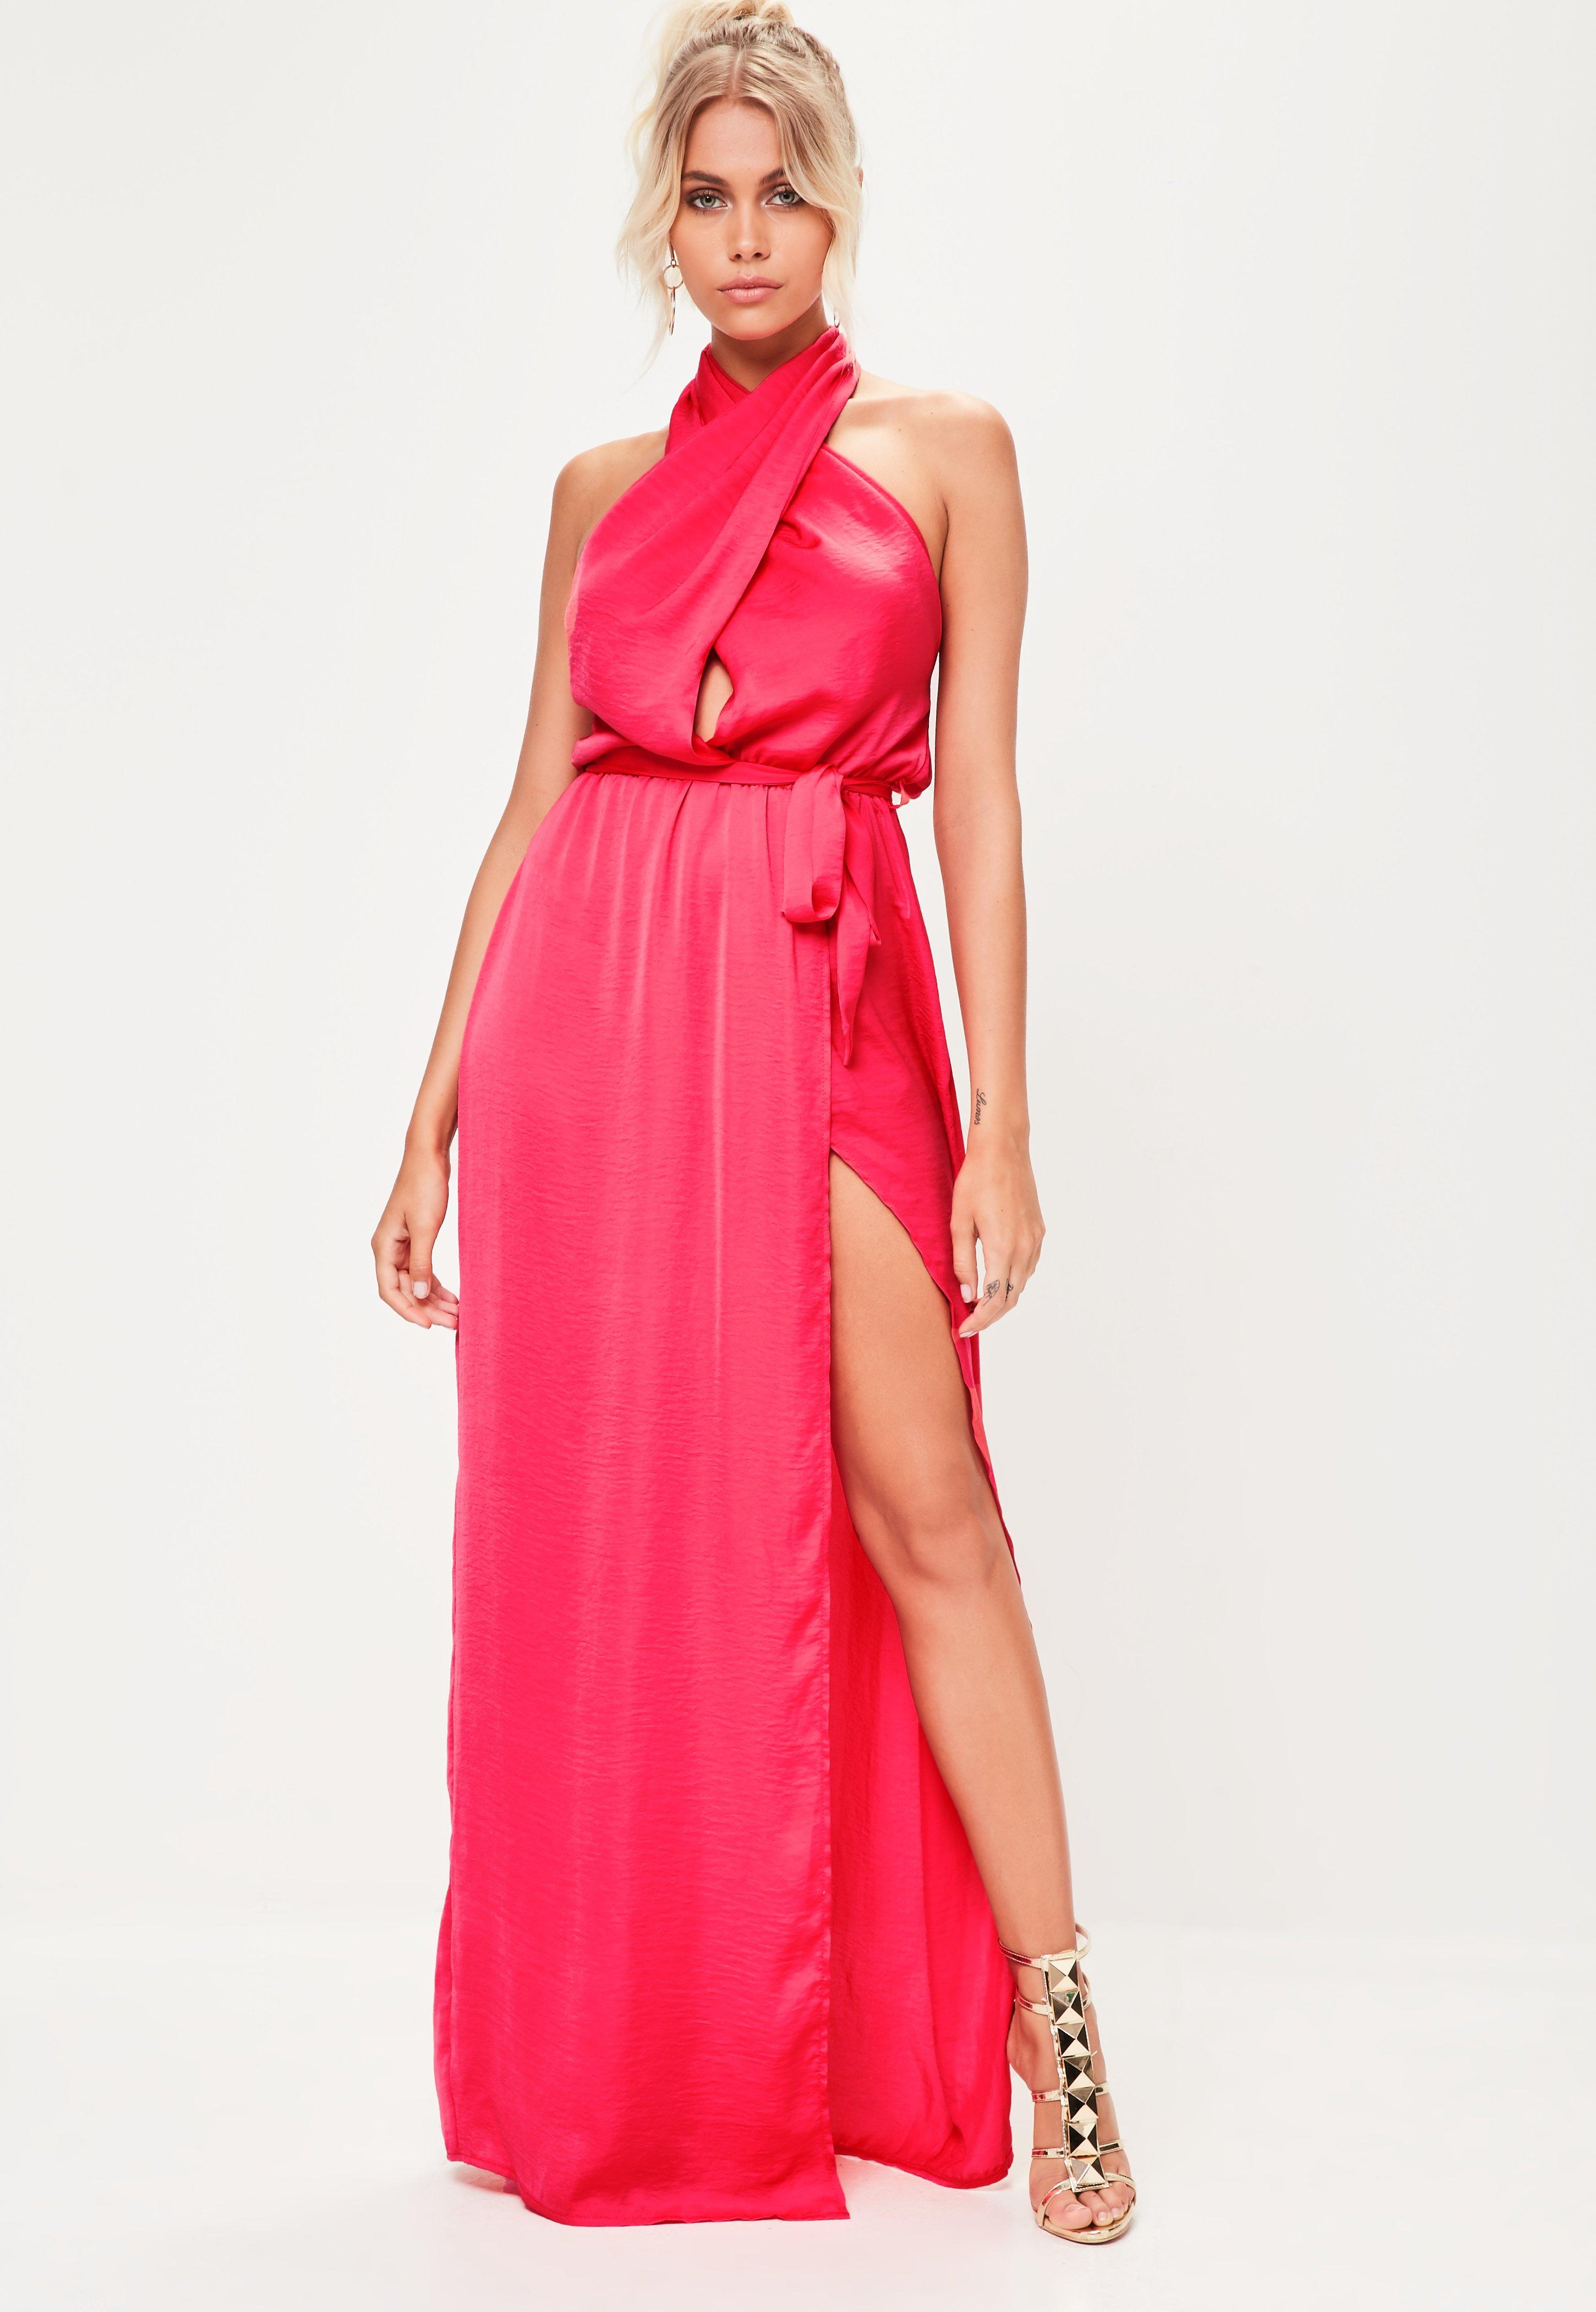 Wedding Guest Dresses Dresses for Weddings Missguided